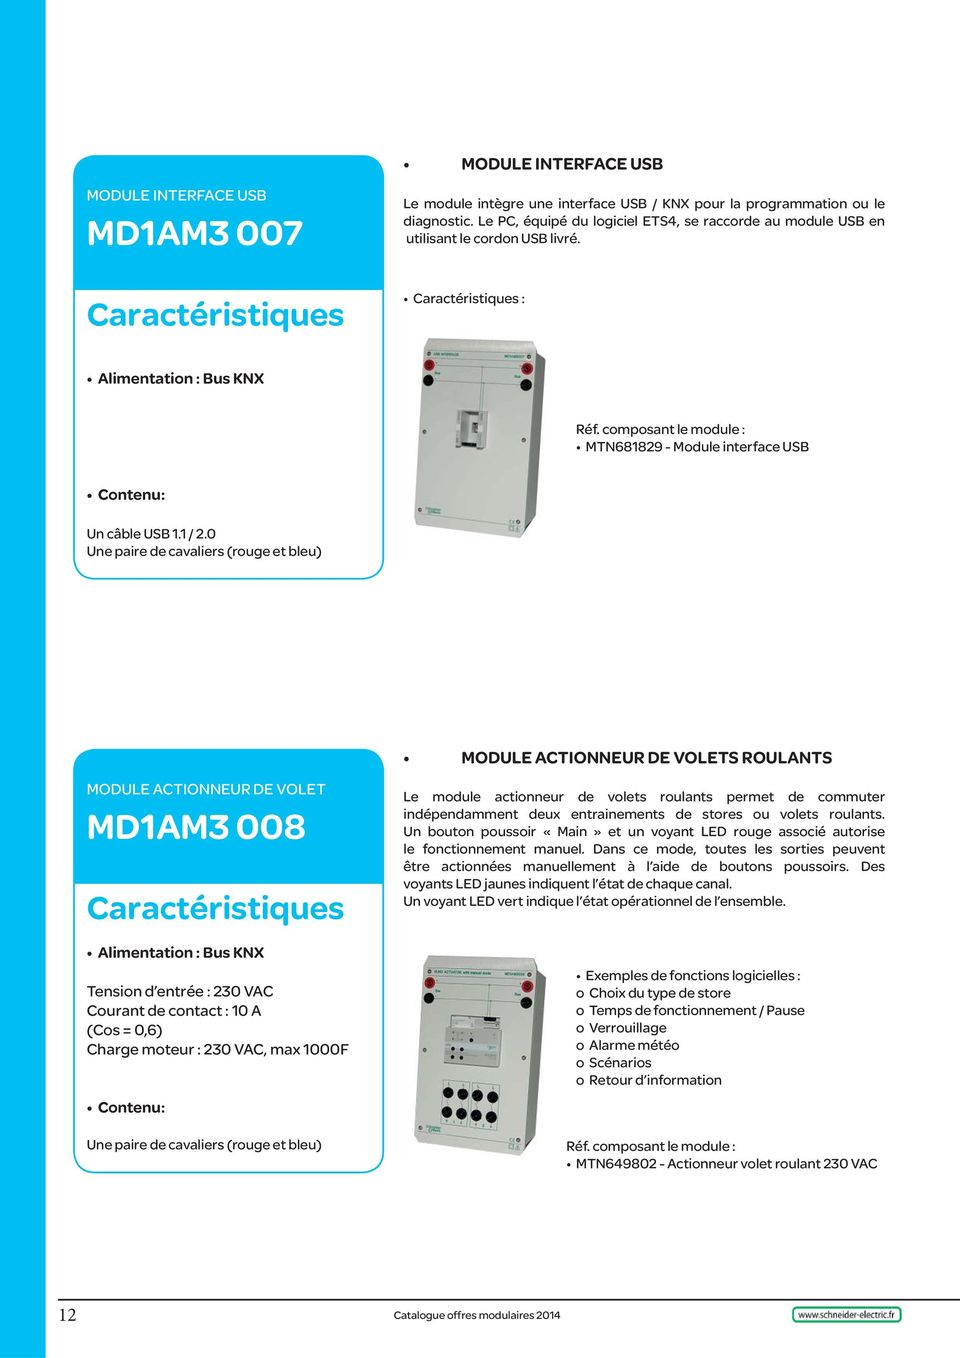 0 MODULE ACTIONNEUR DE VOLET MD1AM3 008 Bus KNX Tension d entrée : 230 VAC Courant de contact : 10 A (Cos = 0,6) Charge moteur : 230 VAC, max 1000F MODULE ACTIONNEUR DE VOLETS ROULANTS Le module